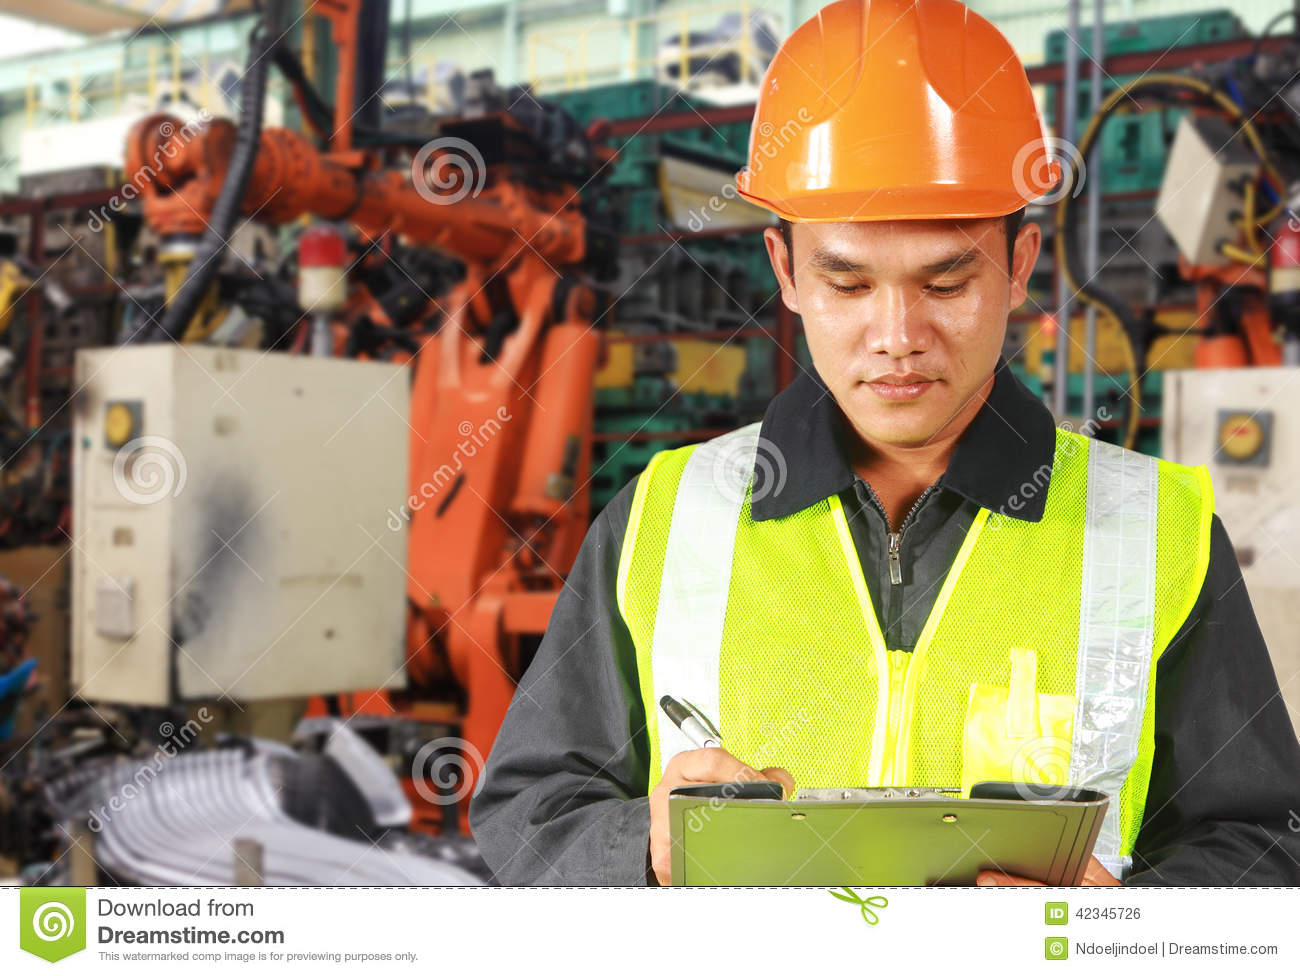 Civil Engineers At Work : Engineer robot wearing safety helmet stock photo